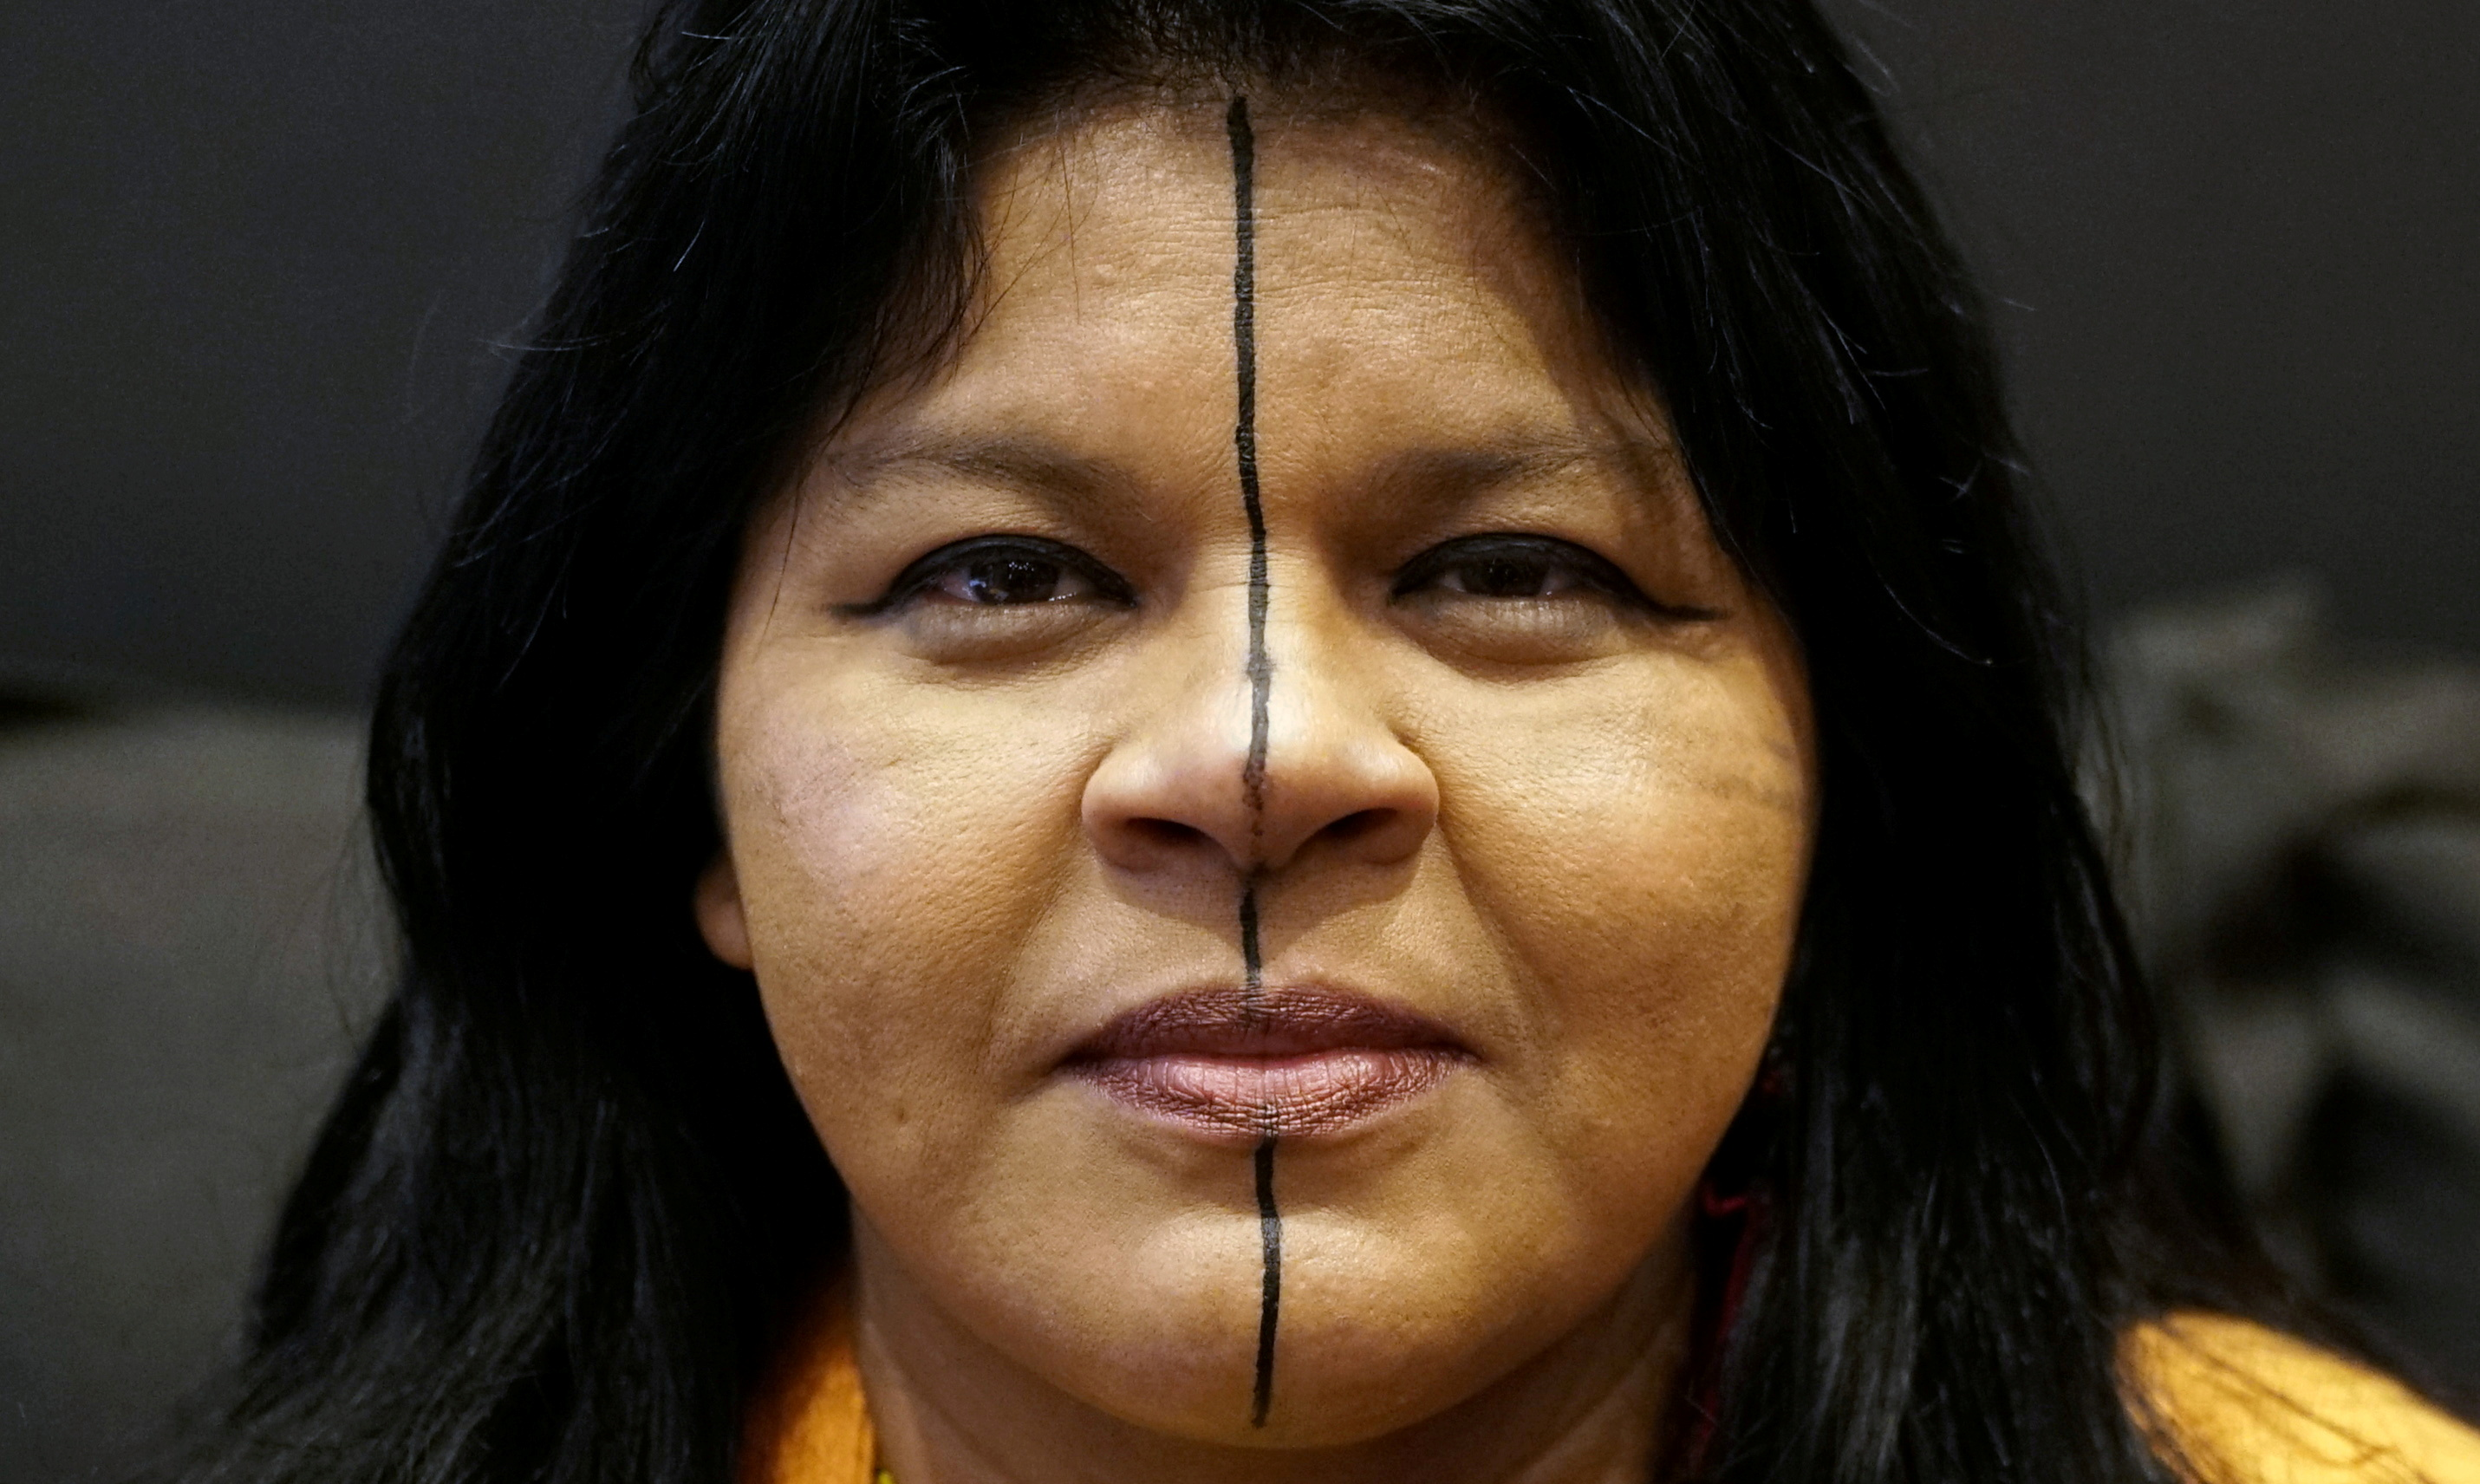 Indigenous leader Sonia Guajajara of the Guajajara tribe is seen during an interview with Reuters during her European tour in Paris, France, November 11, 2019. REUTERS/Noemie Olive/File Photo